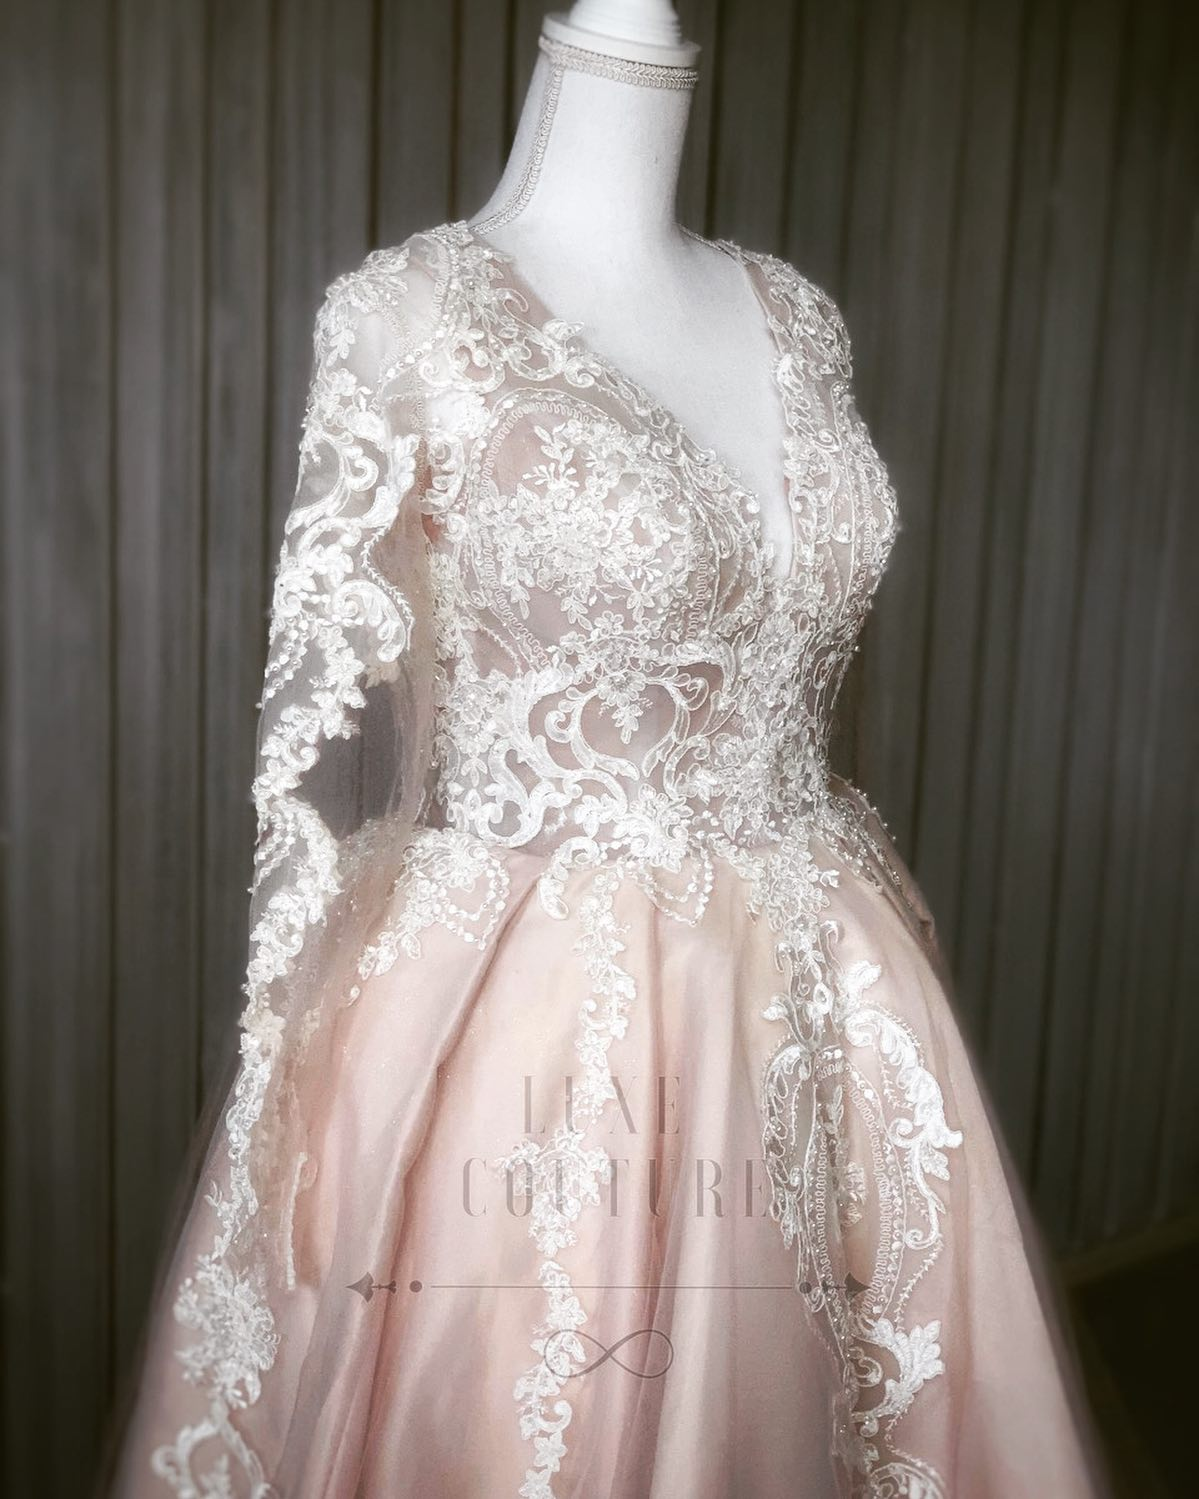 Luxe Couture Blush and White Lace Elegant Wedding Dress